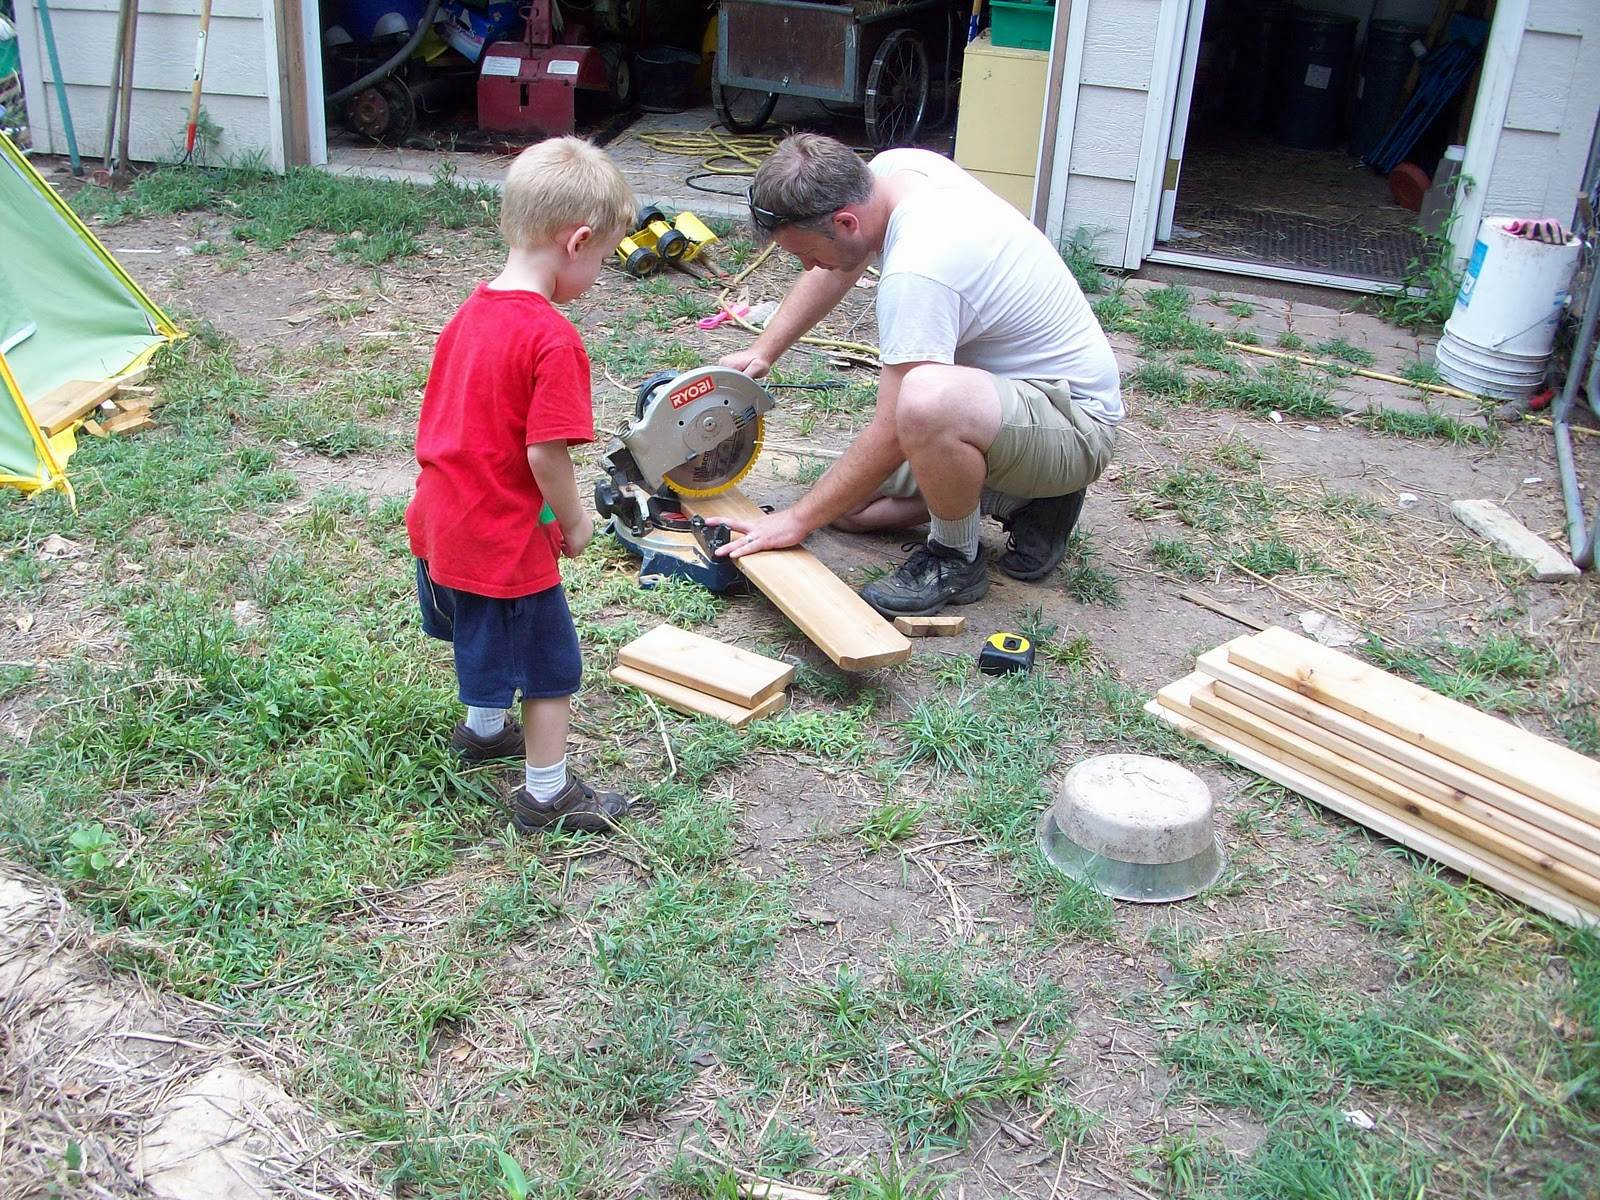 homestead roots sandbox for addies birthday could also be a